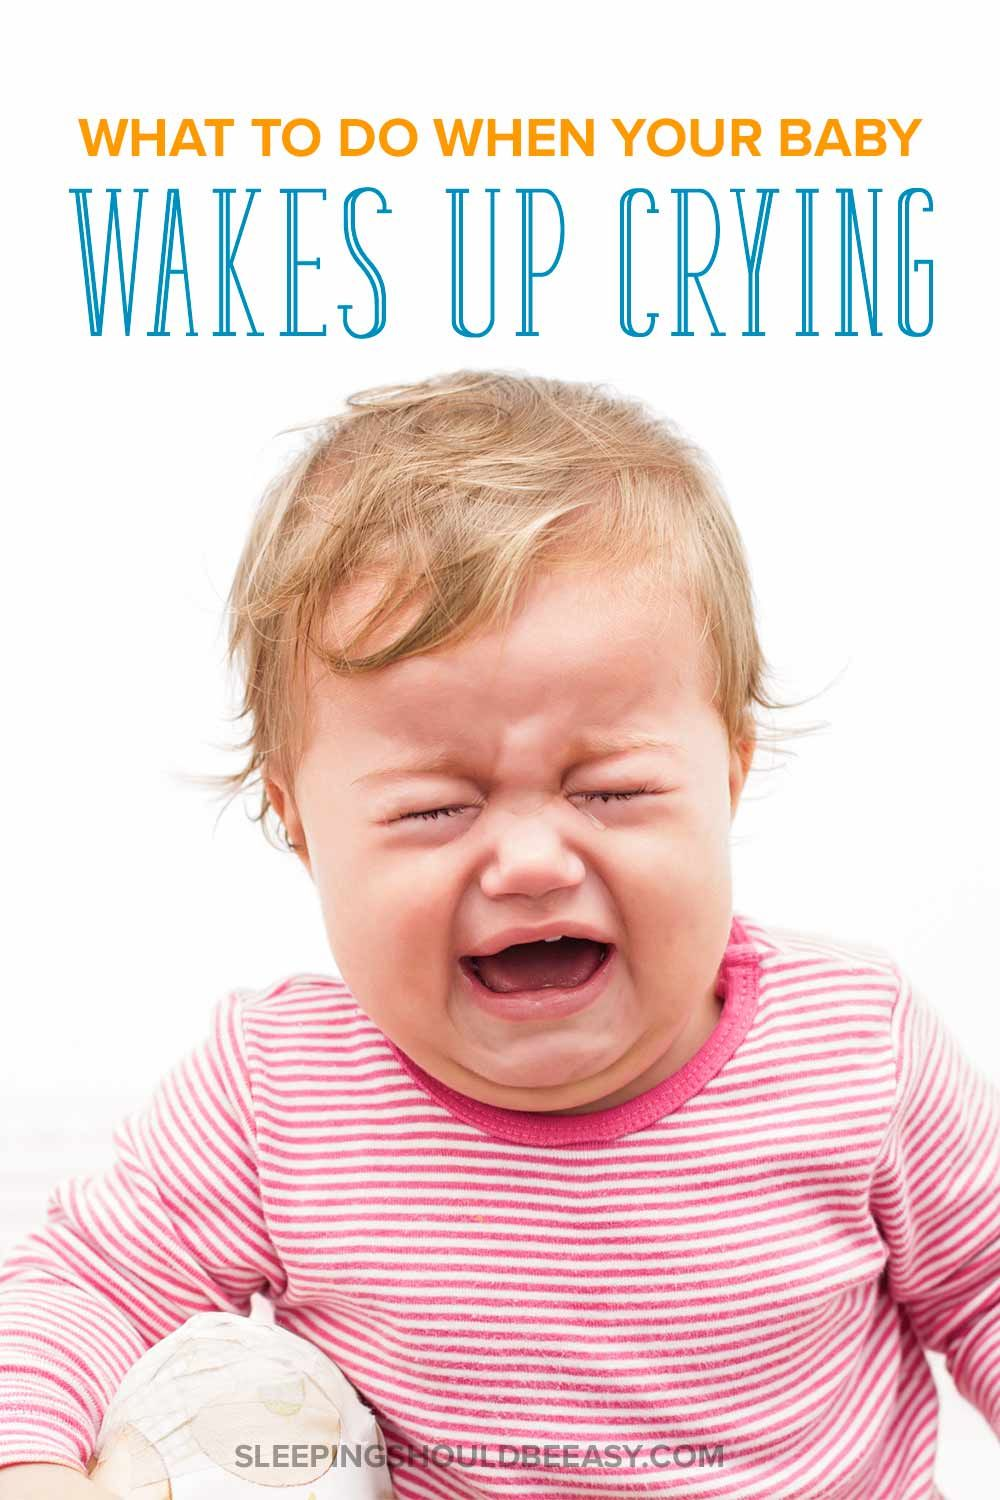 1375353638ecf53b28b95728031fac78 - How To Get A 1 Year Old To Stop Crying